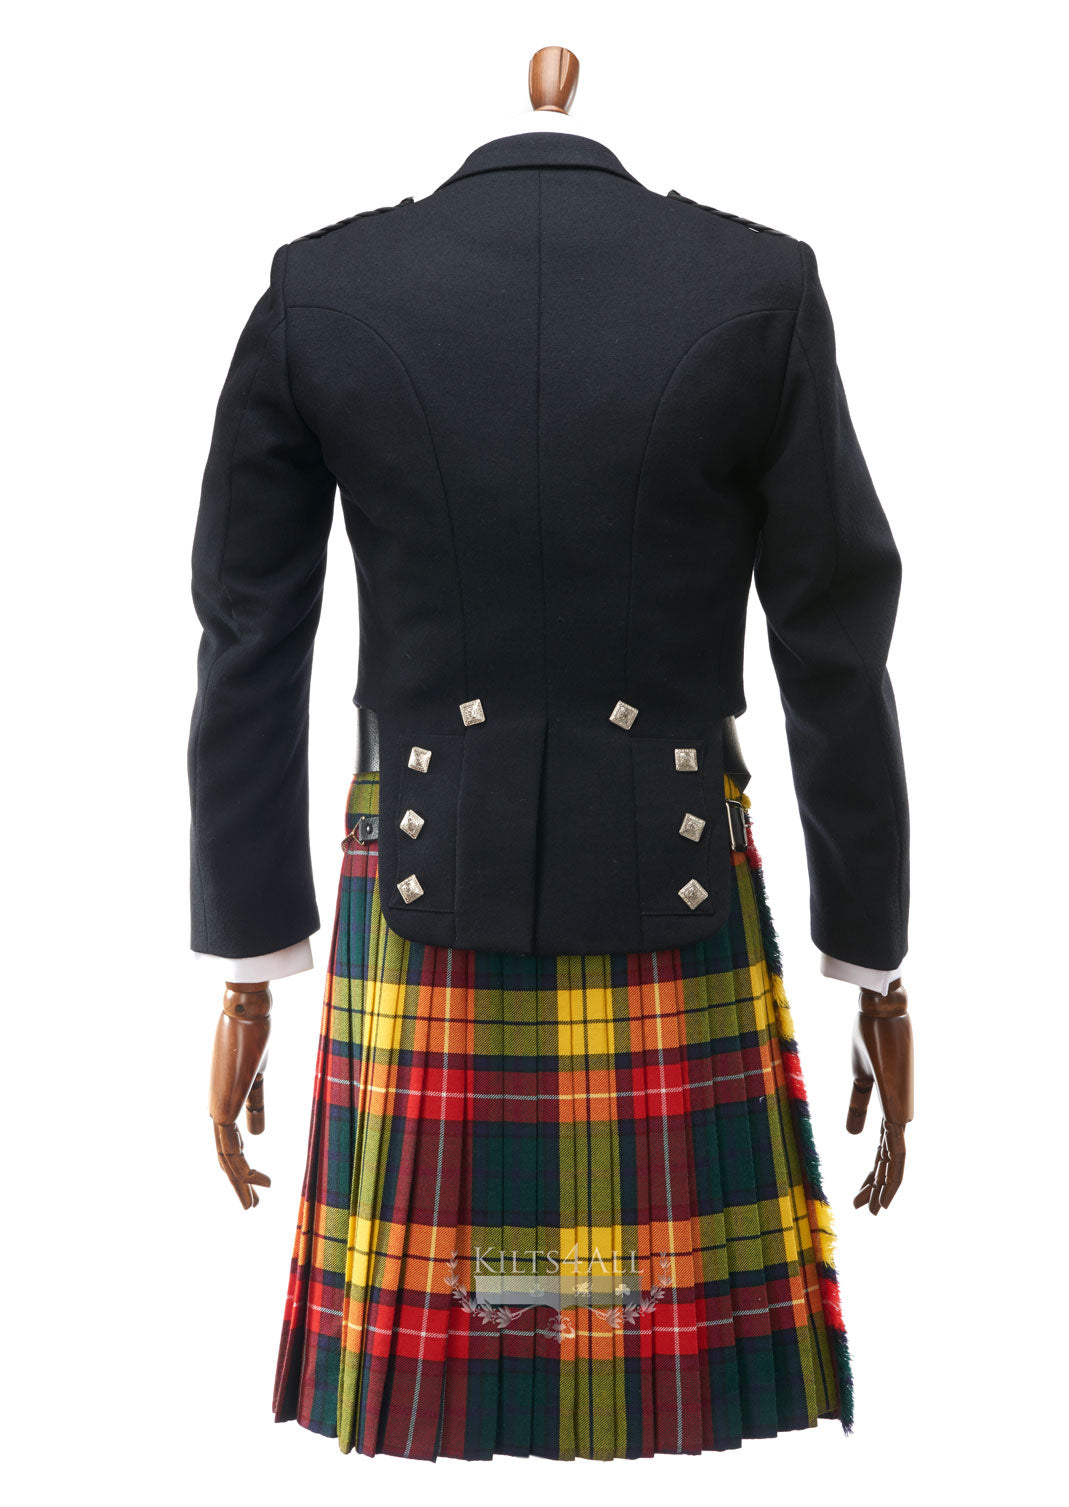 Mens Prince Charlie Jacket & 5 Button Waistcoat to Buy